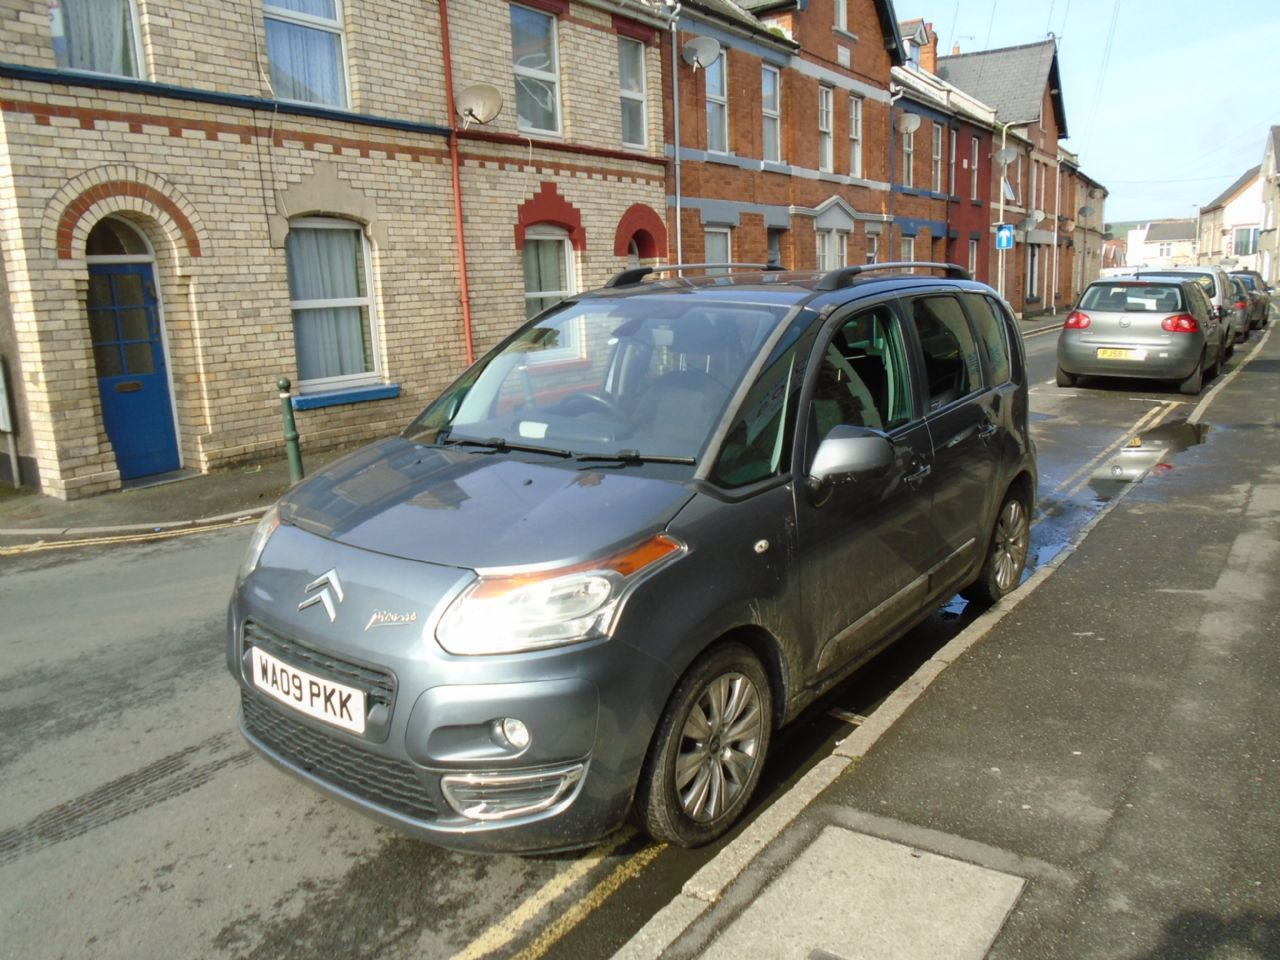 CITROEN C3 PICASSO 1.4VTi 16v 95HP Exclusive - Picture 3